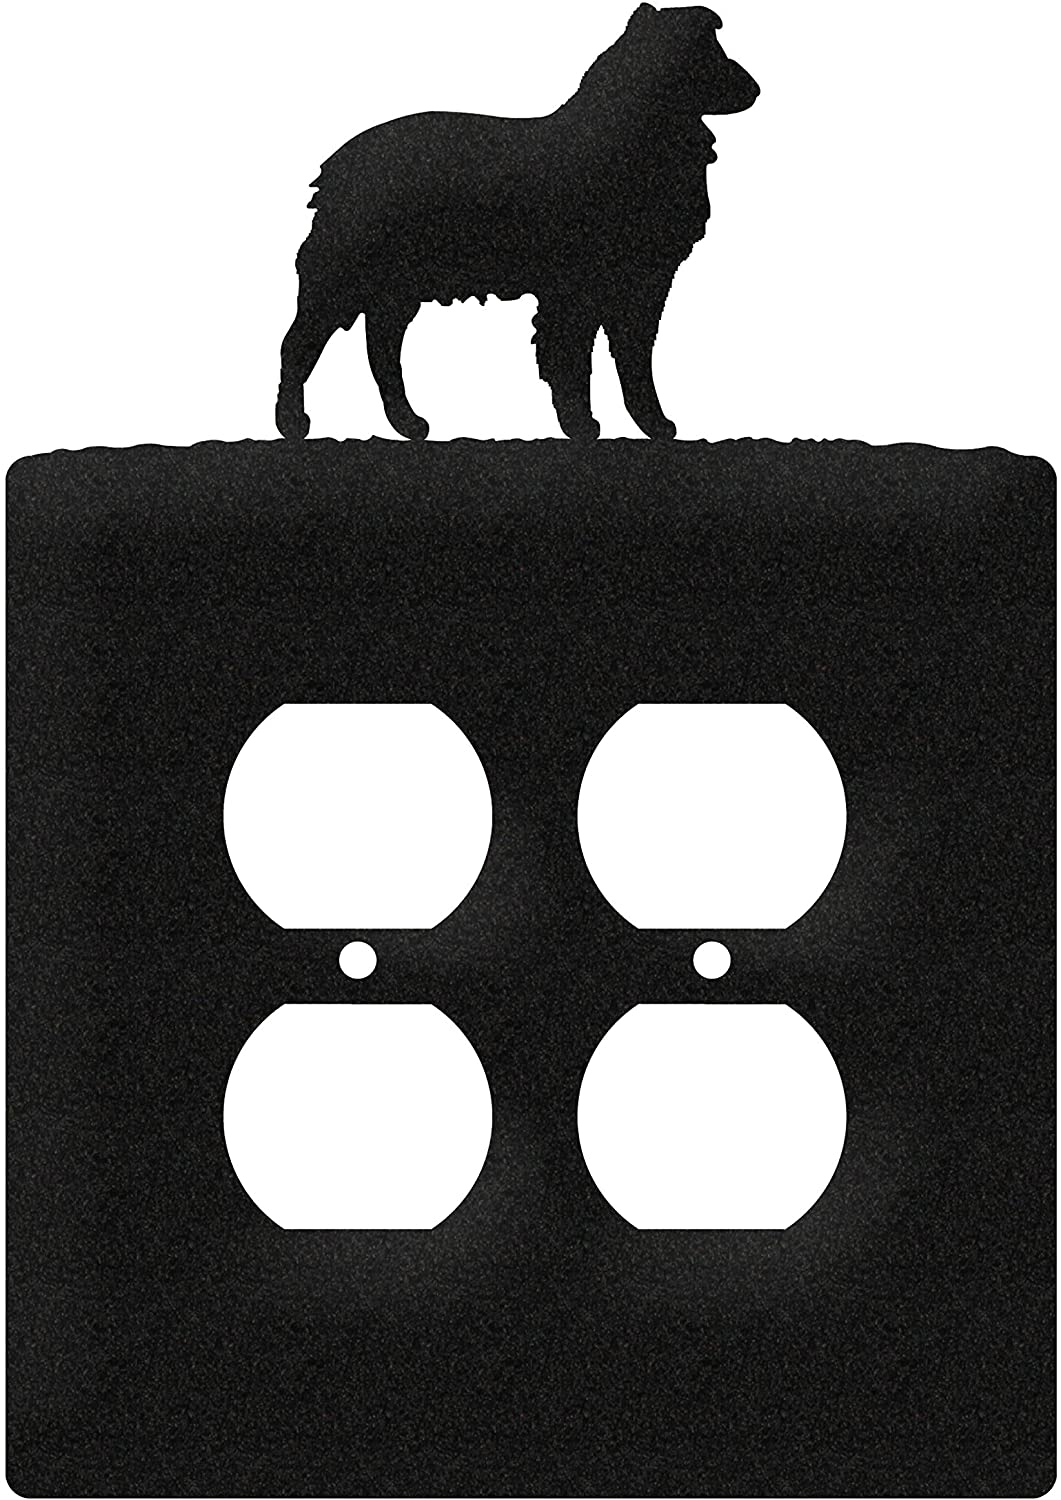 SWEN Products Australian Shepherd Metal Wall Plate Cover (Double Outlet, Black)